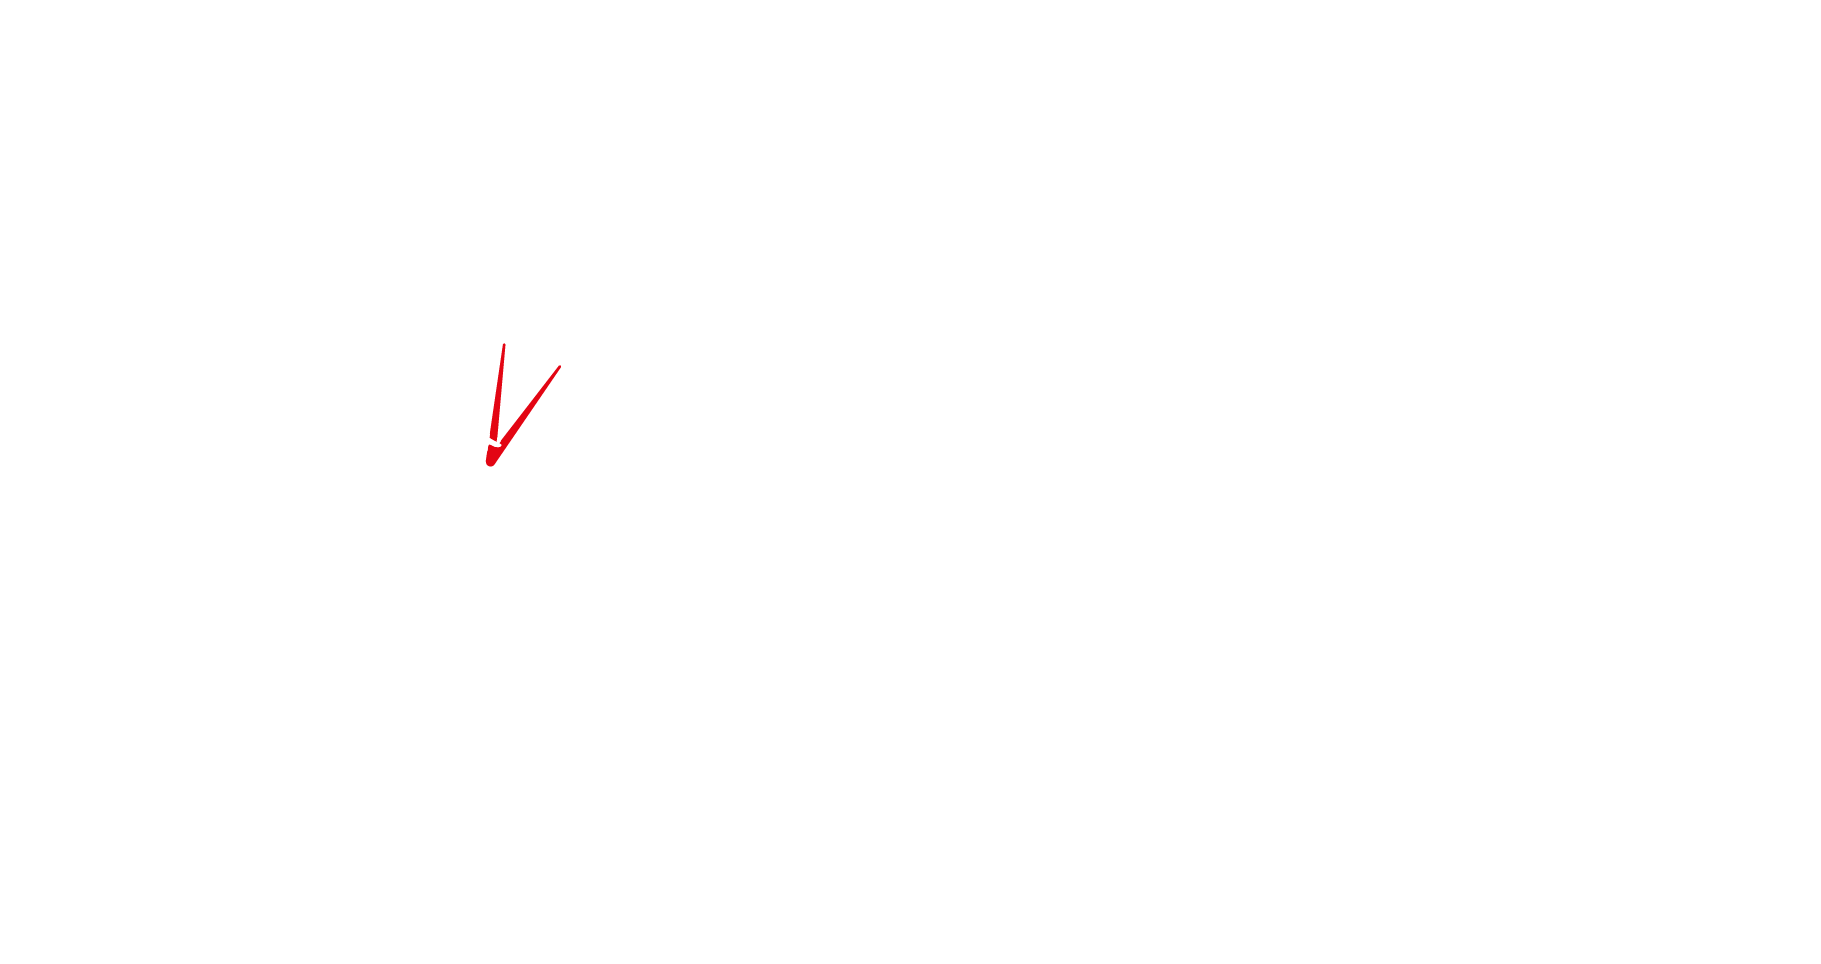 ICAEW White